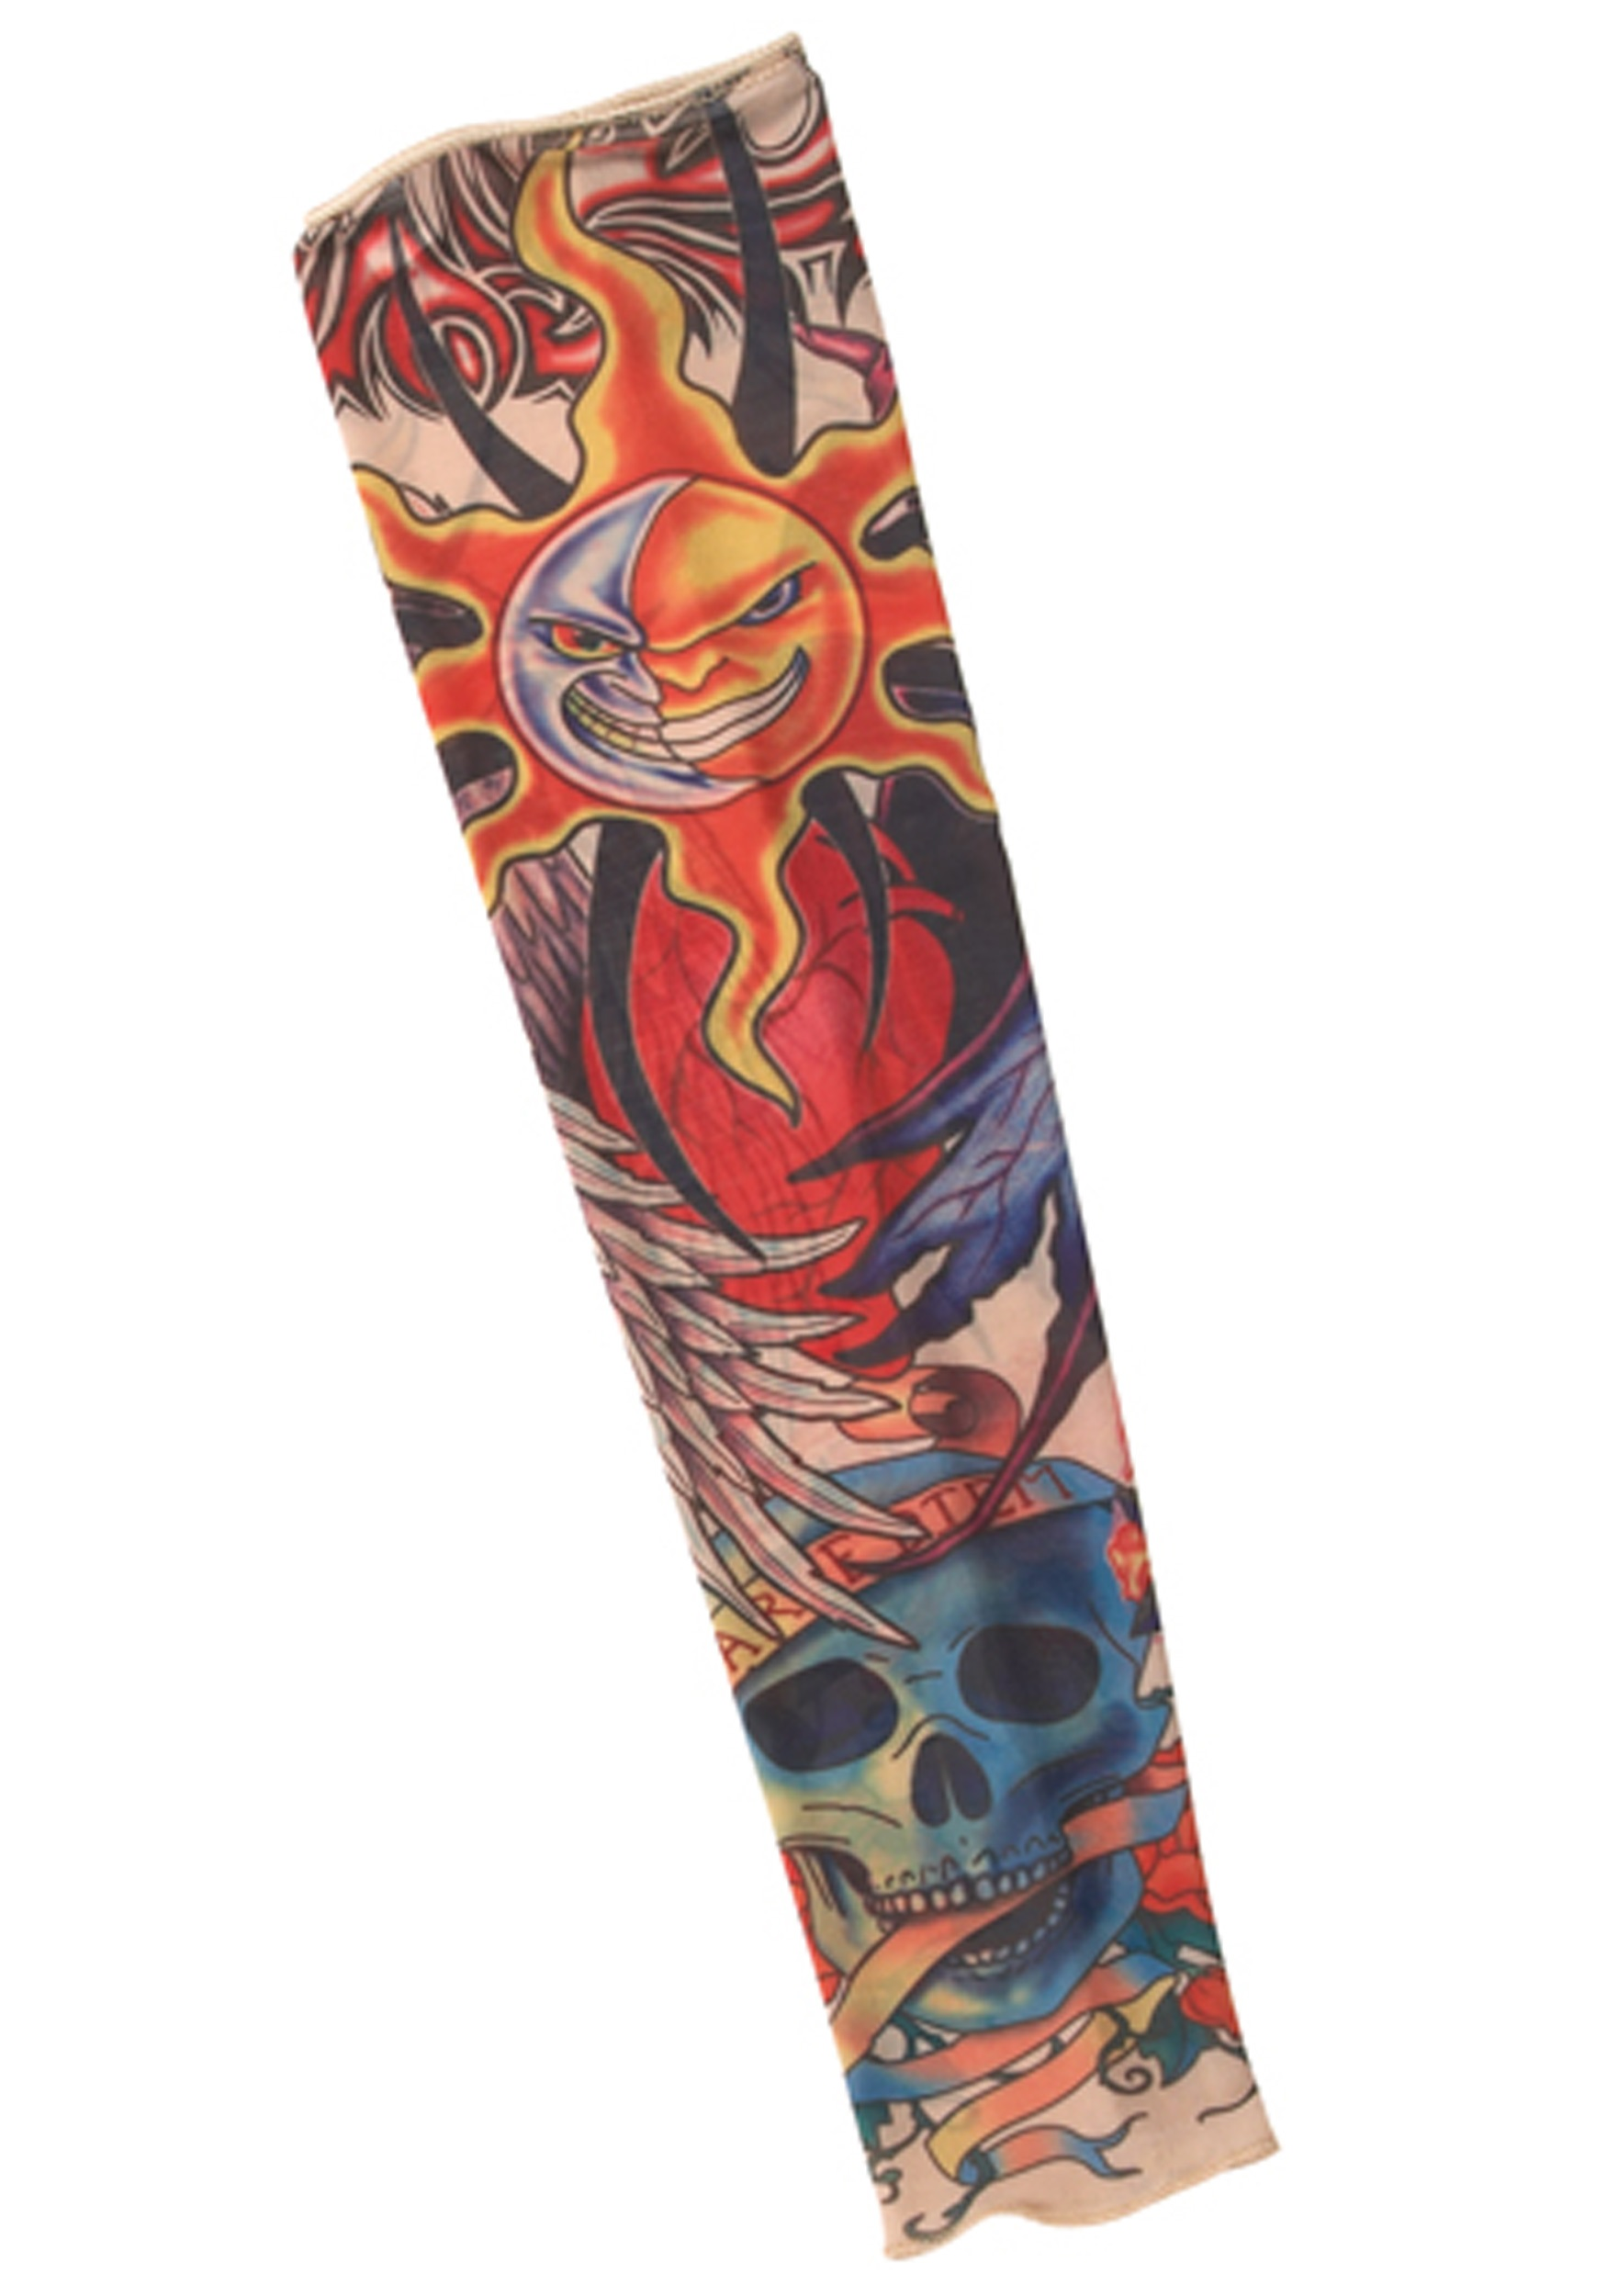 Halloween Rockstar.Rock Star Tattoo Sleeve